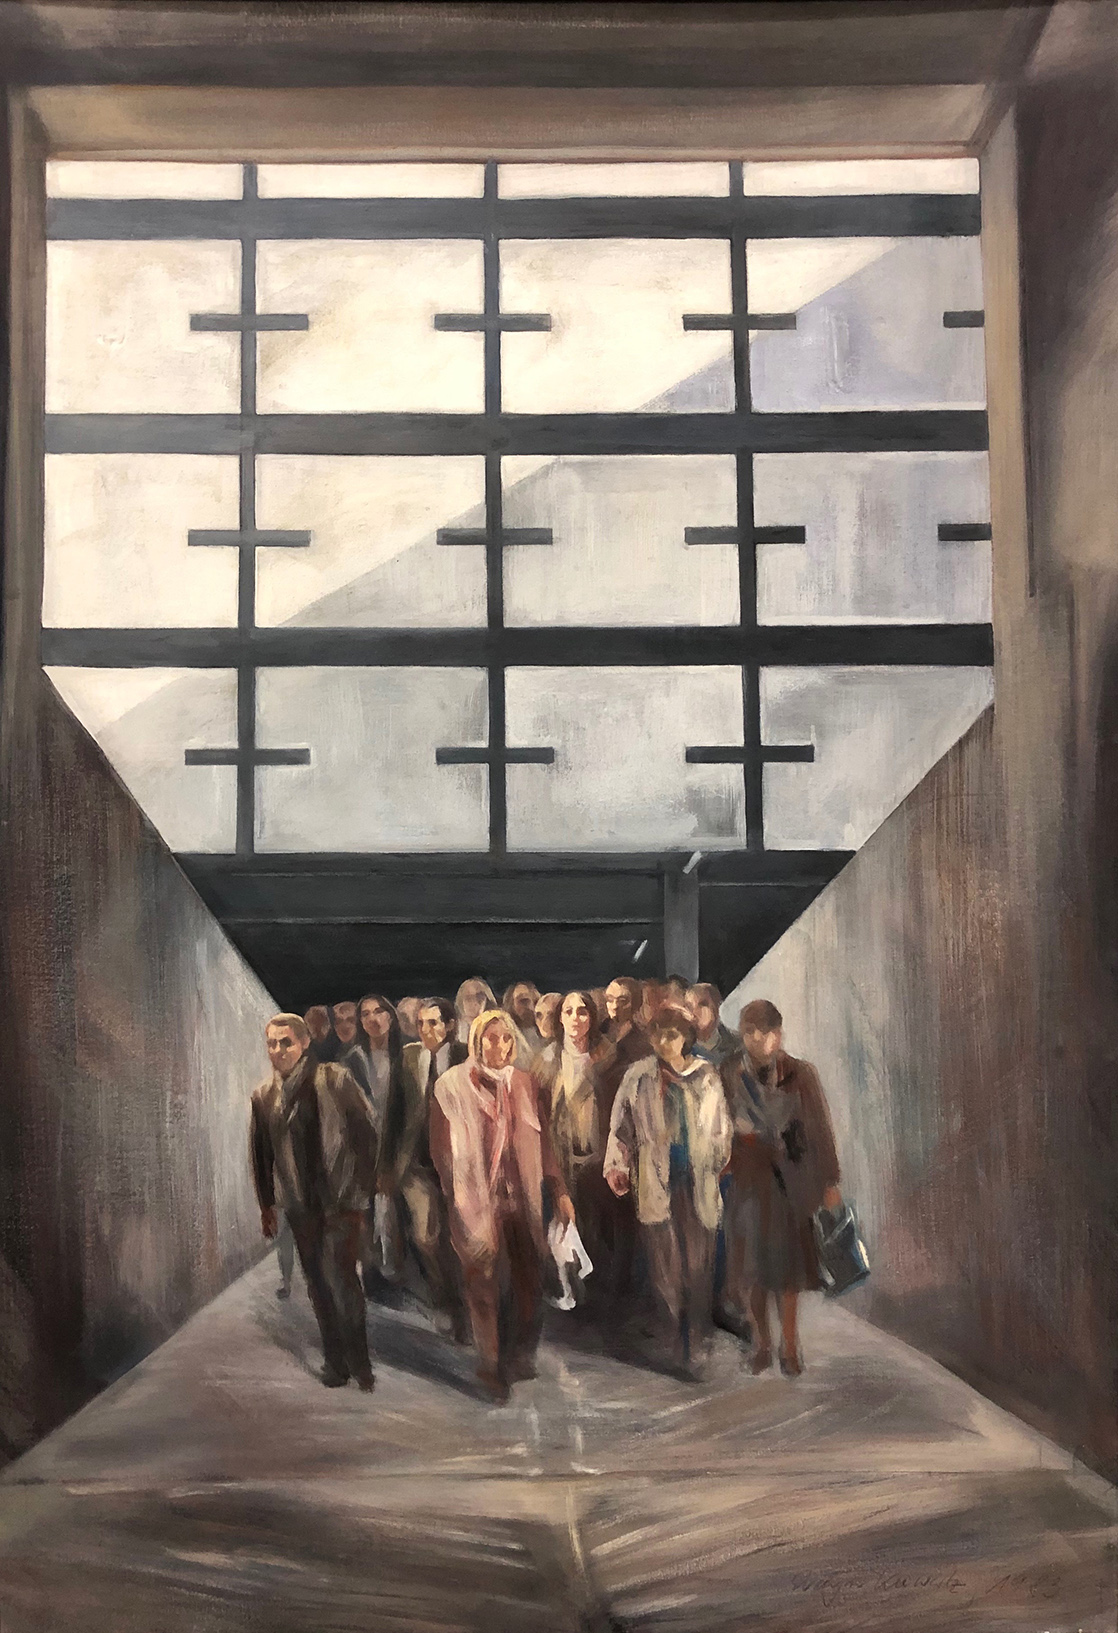 Evelyn Kuwertz | Fallout Shelter | 1983 | tempera, oil on canvas | signed and dated | 100 x 70 cm